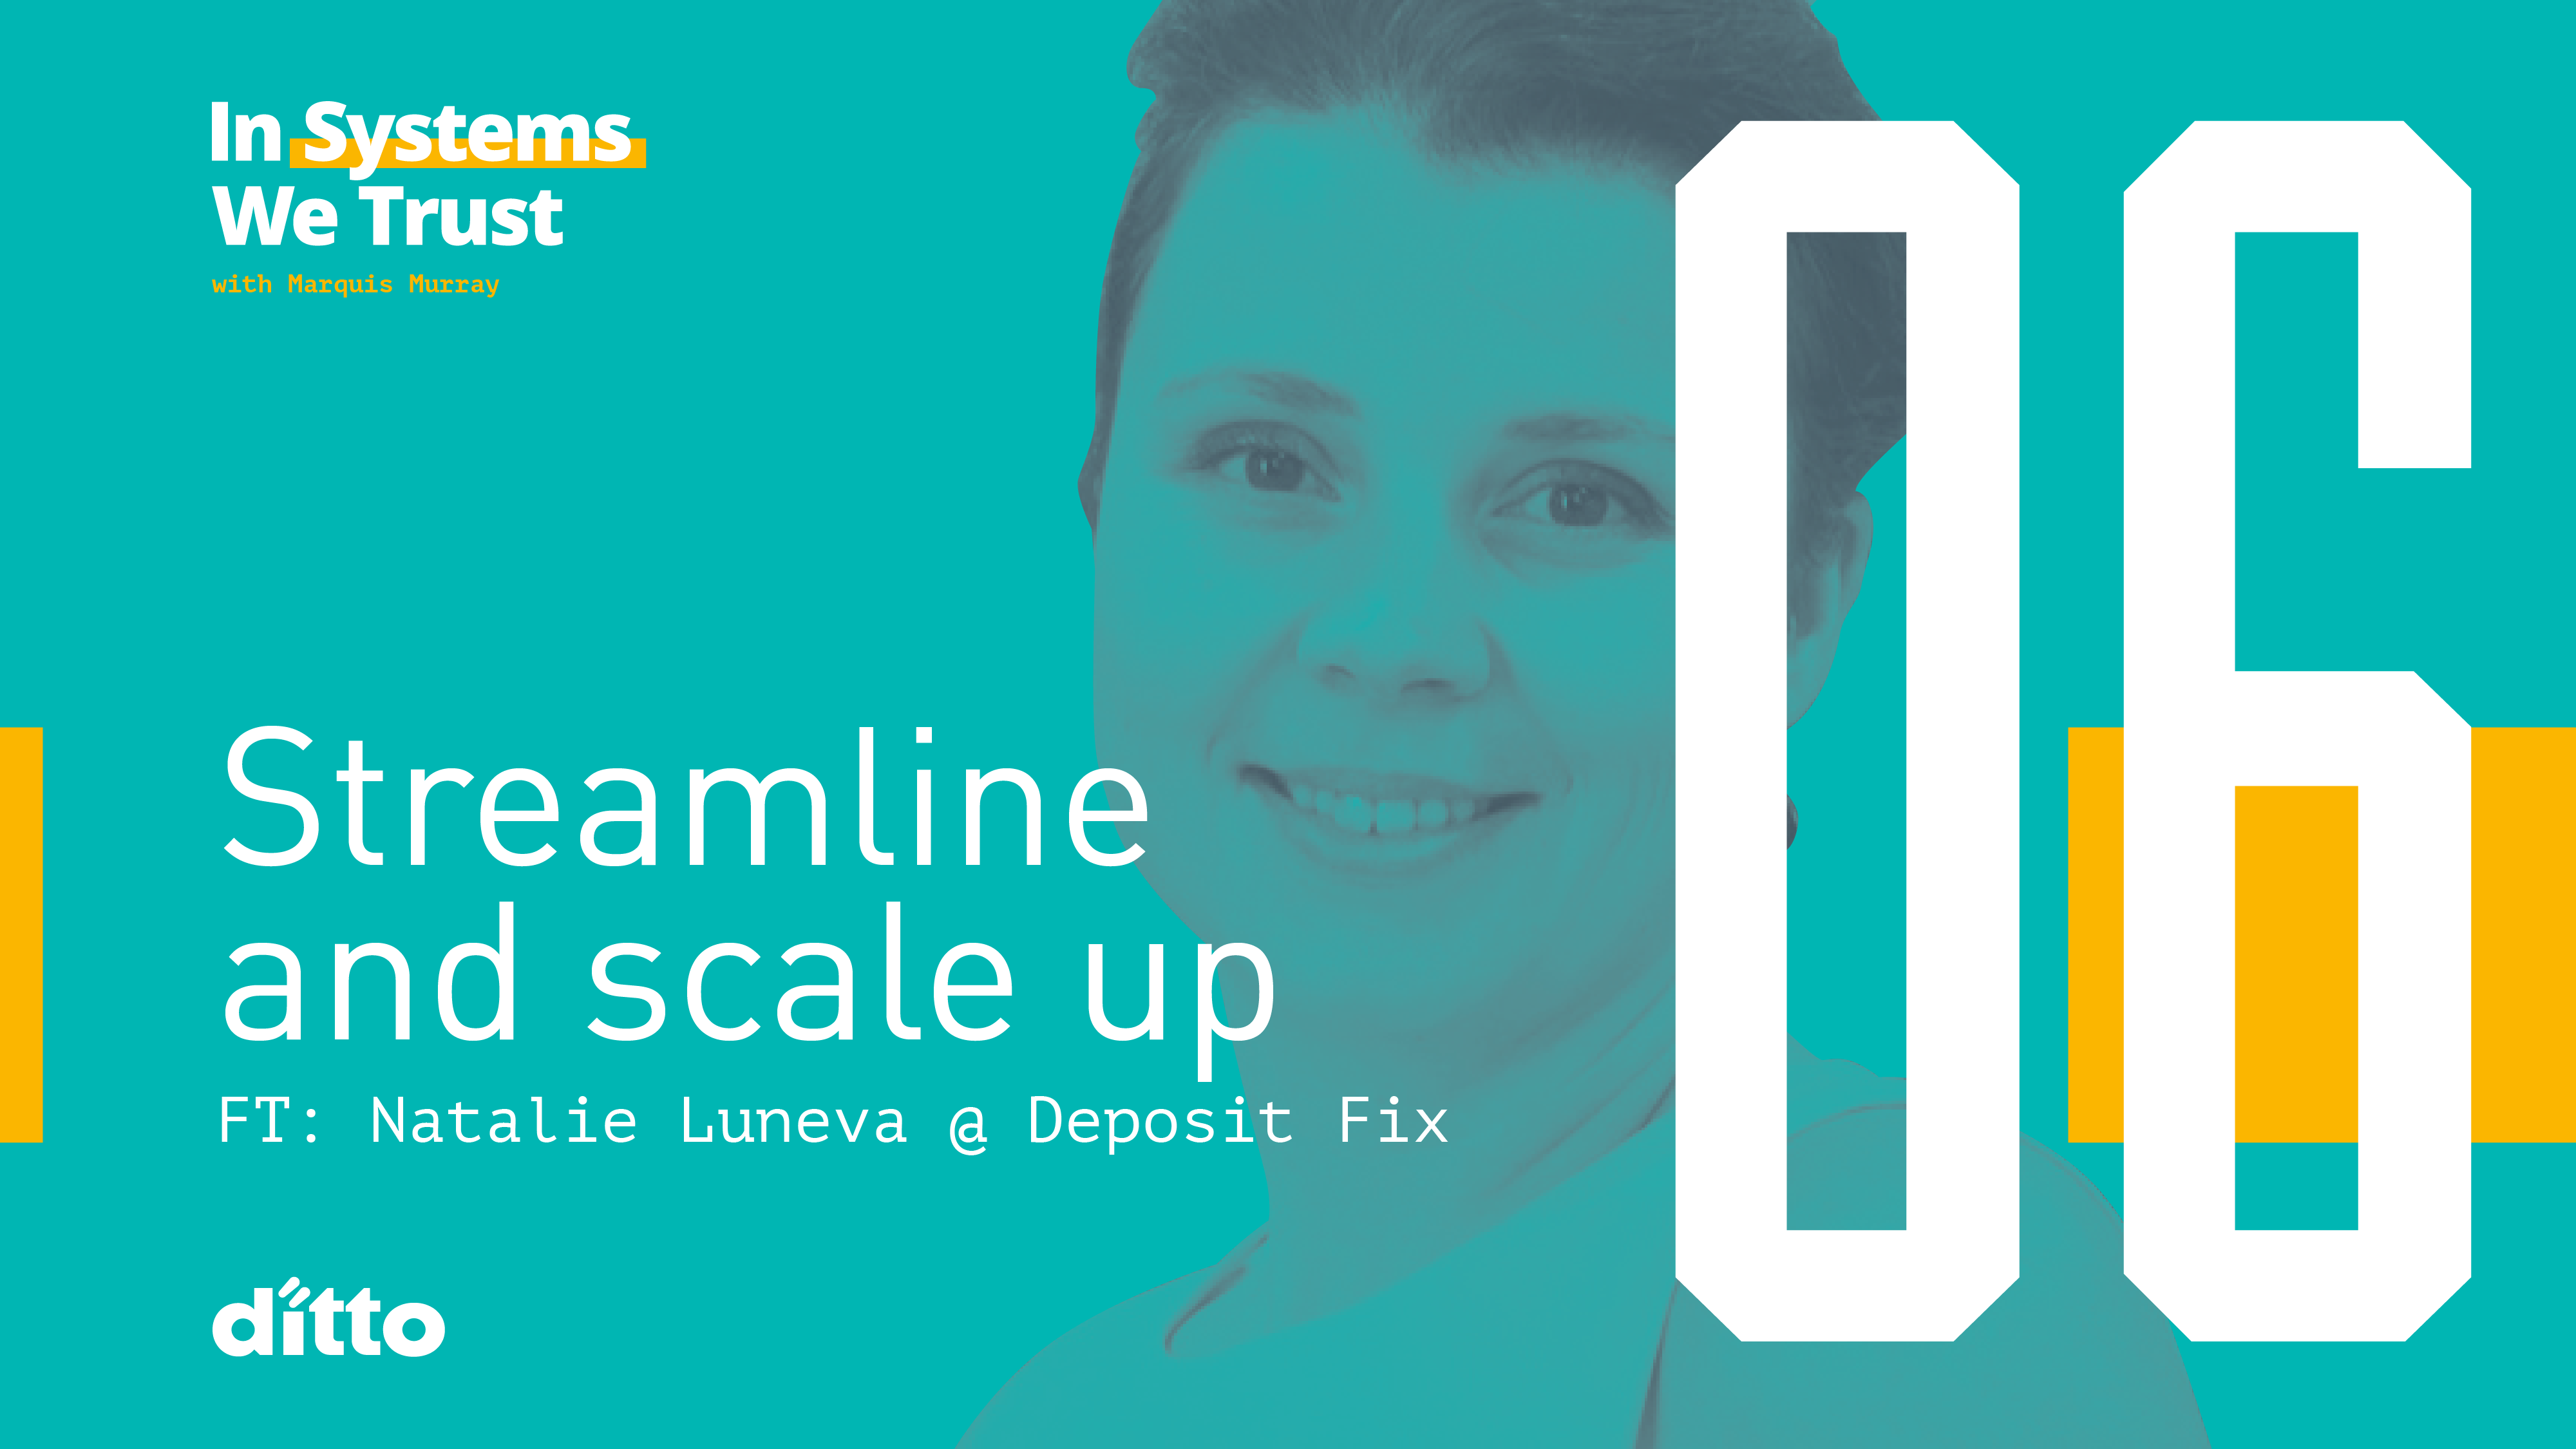 Streamline Your Operations and Scale Up